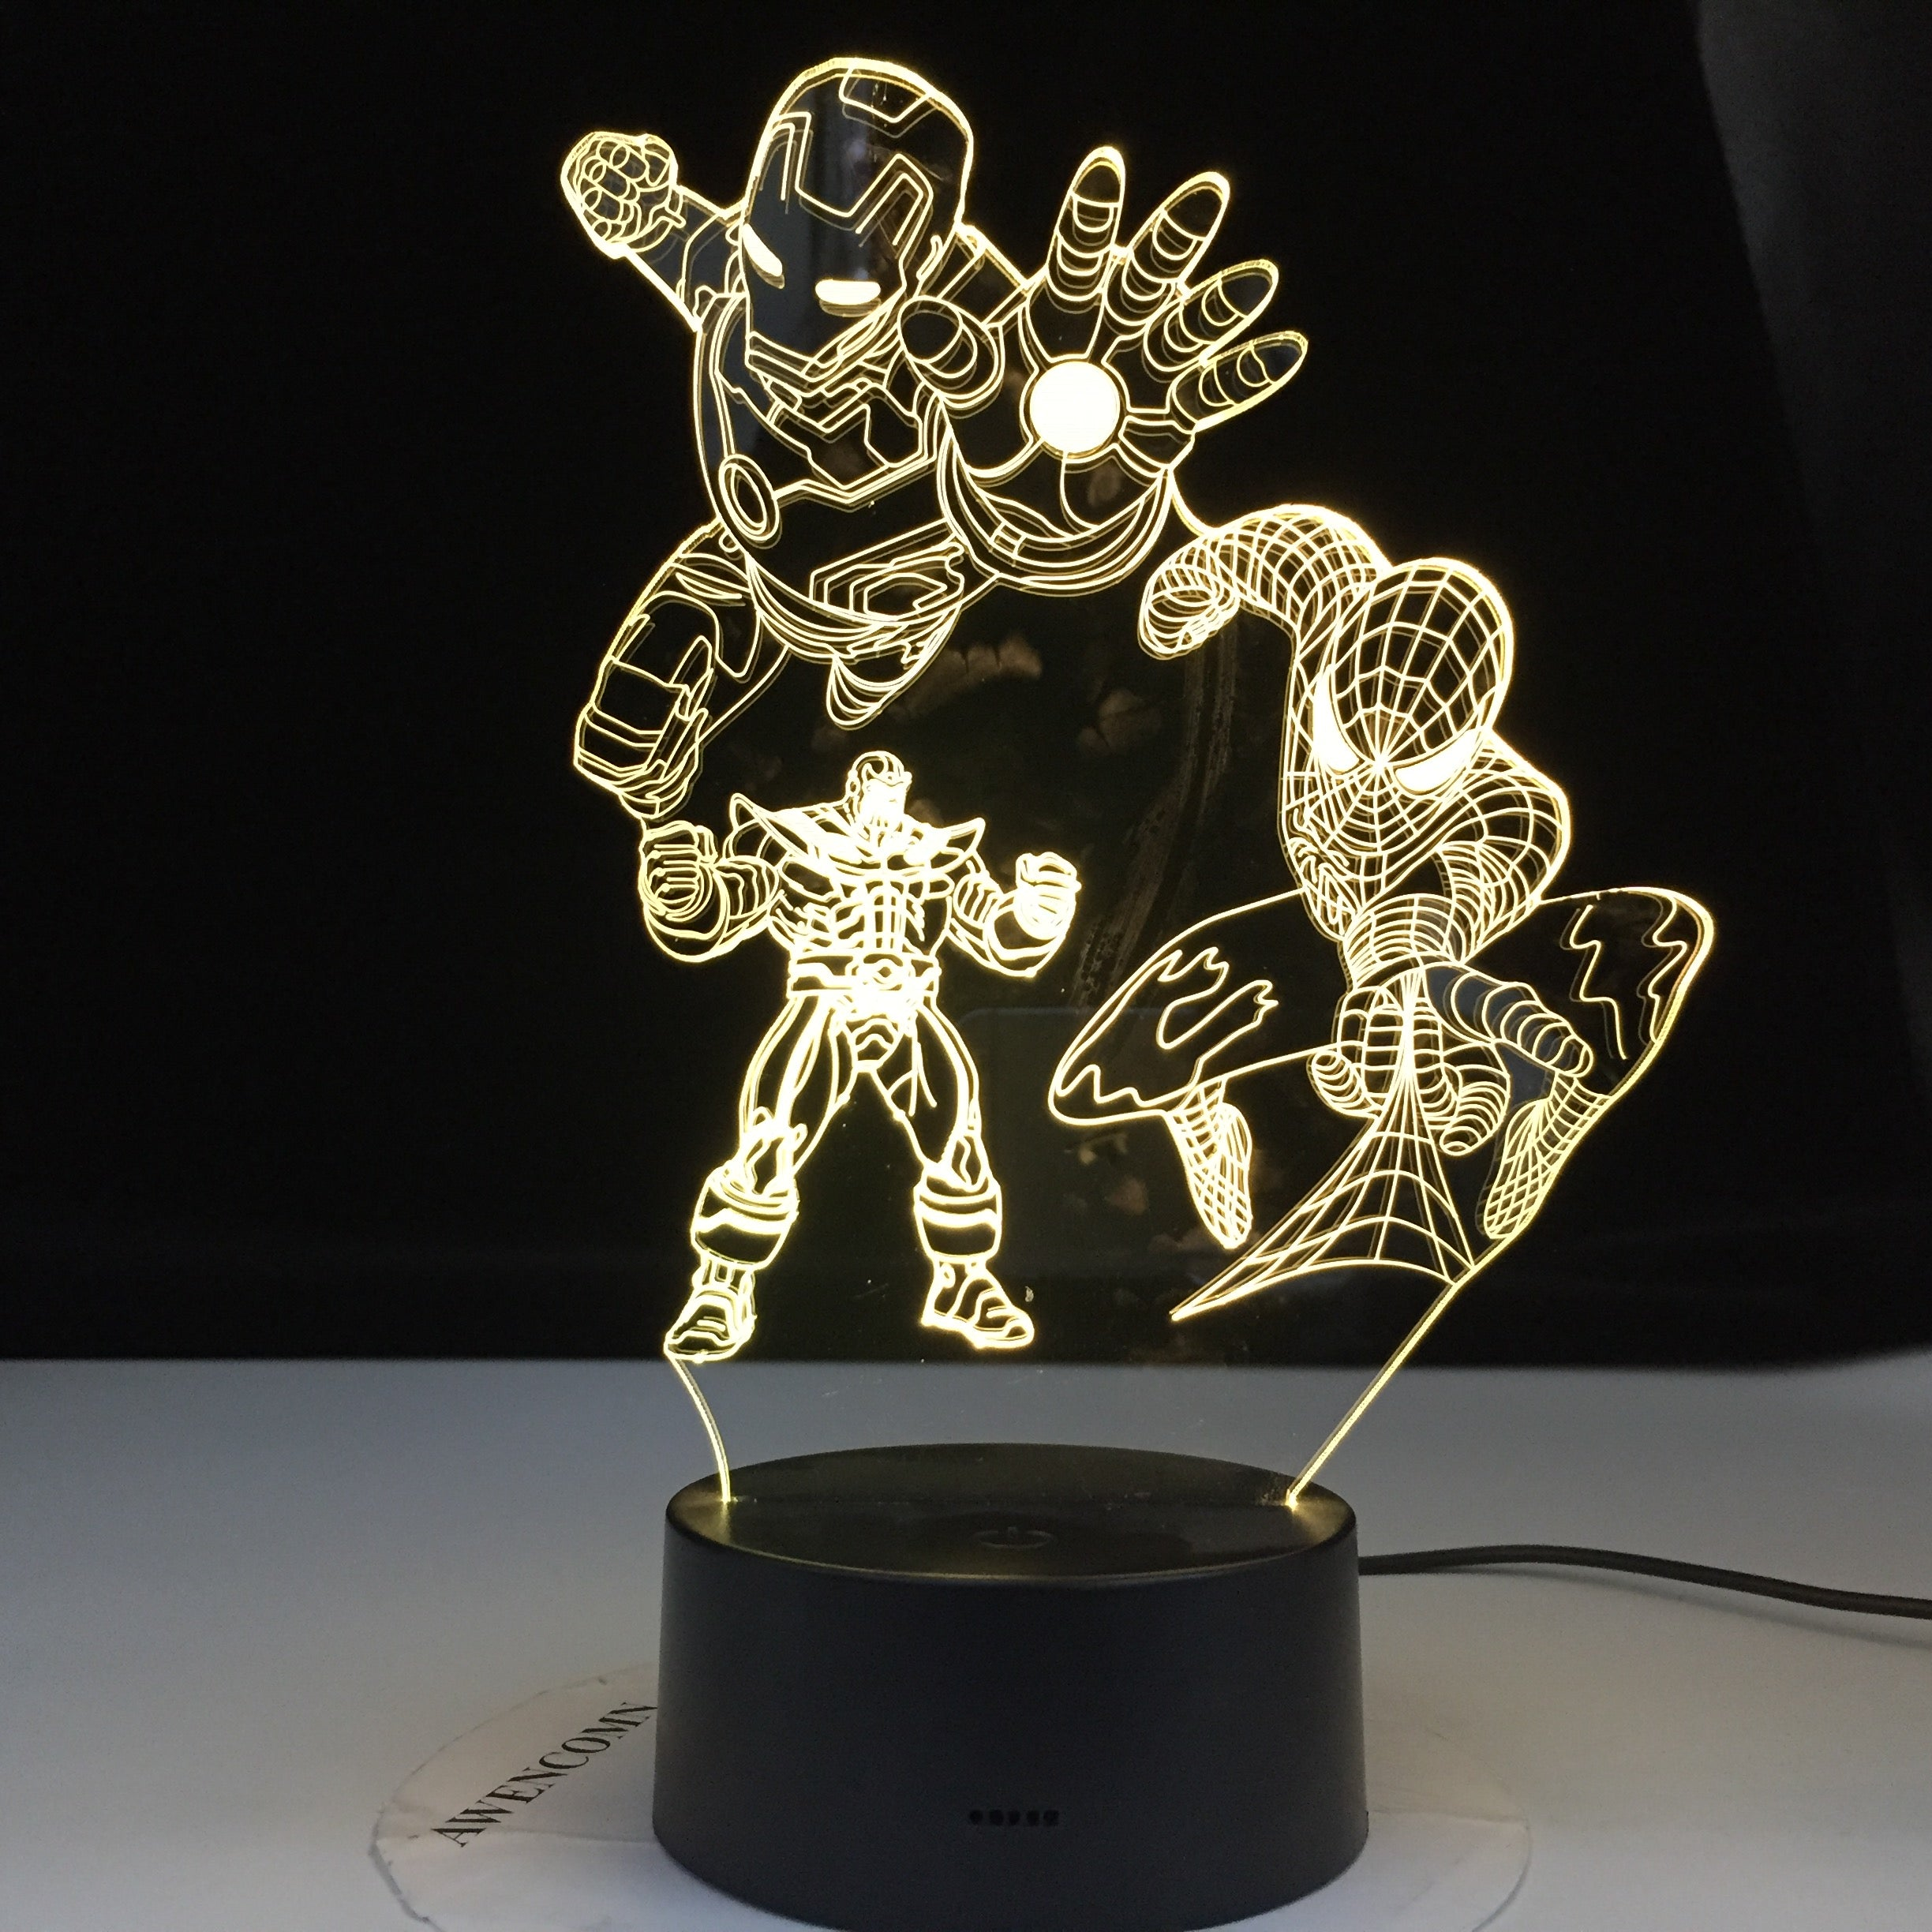 Iron Man Spiderman Thanos Marvel Team Figure Child Night Light Led Touch Sensor Colors Changing Nightlight for Home Decor Gift